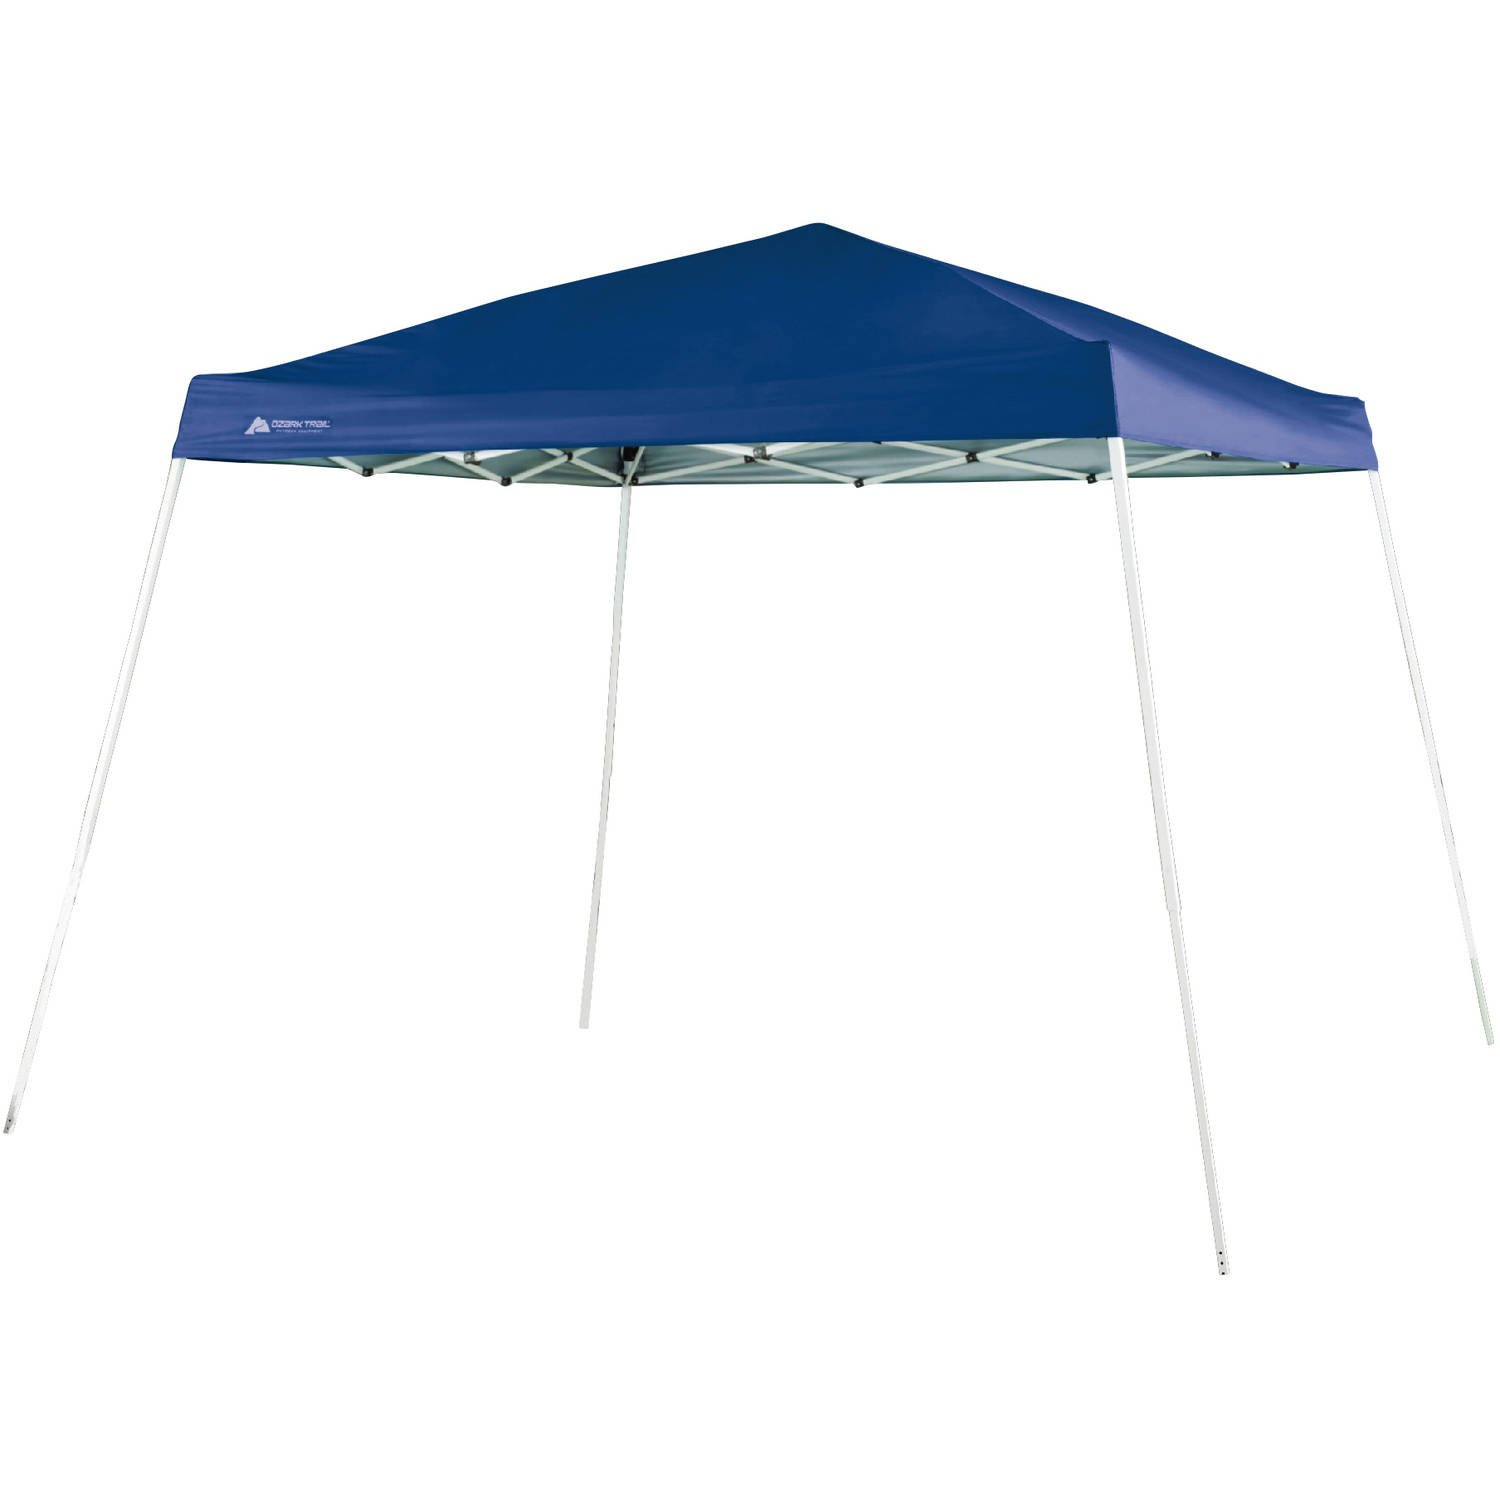 purchase cheap f6969 fdef7 Ozark Trail 10 FT X 10 FT Slant Leg Instant Setup Canopy / Gazebo Shelter /  Easy Pop Up Tent Backyard Outdoor Portable Deck Or Patio Canopy With ...